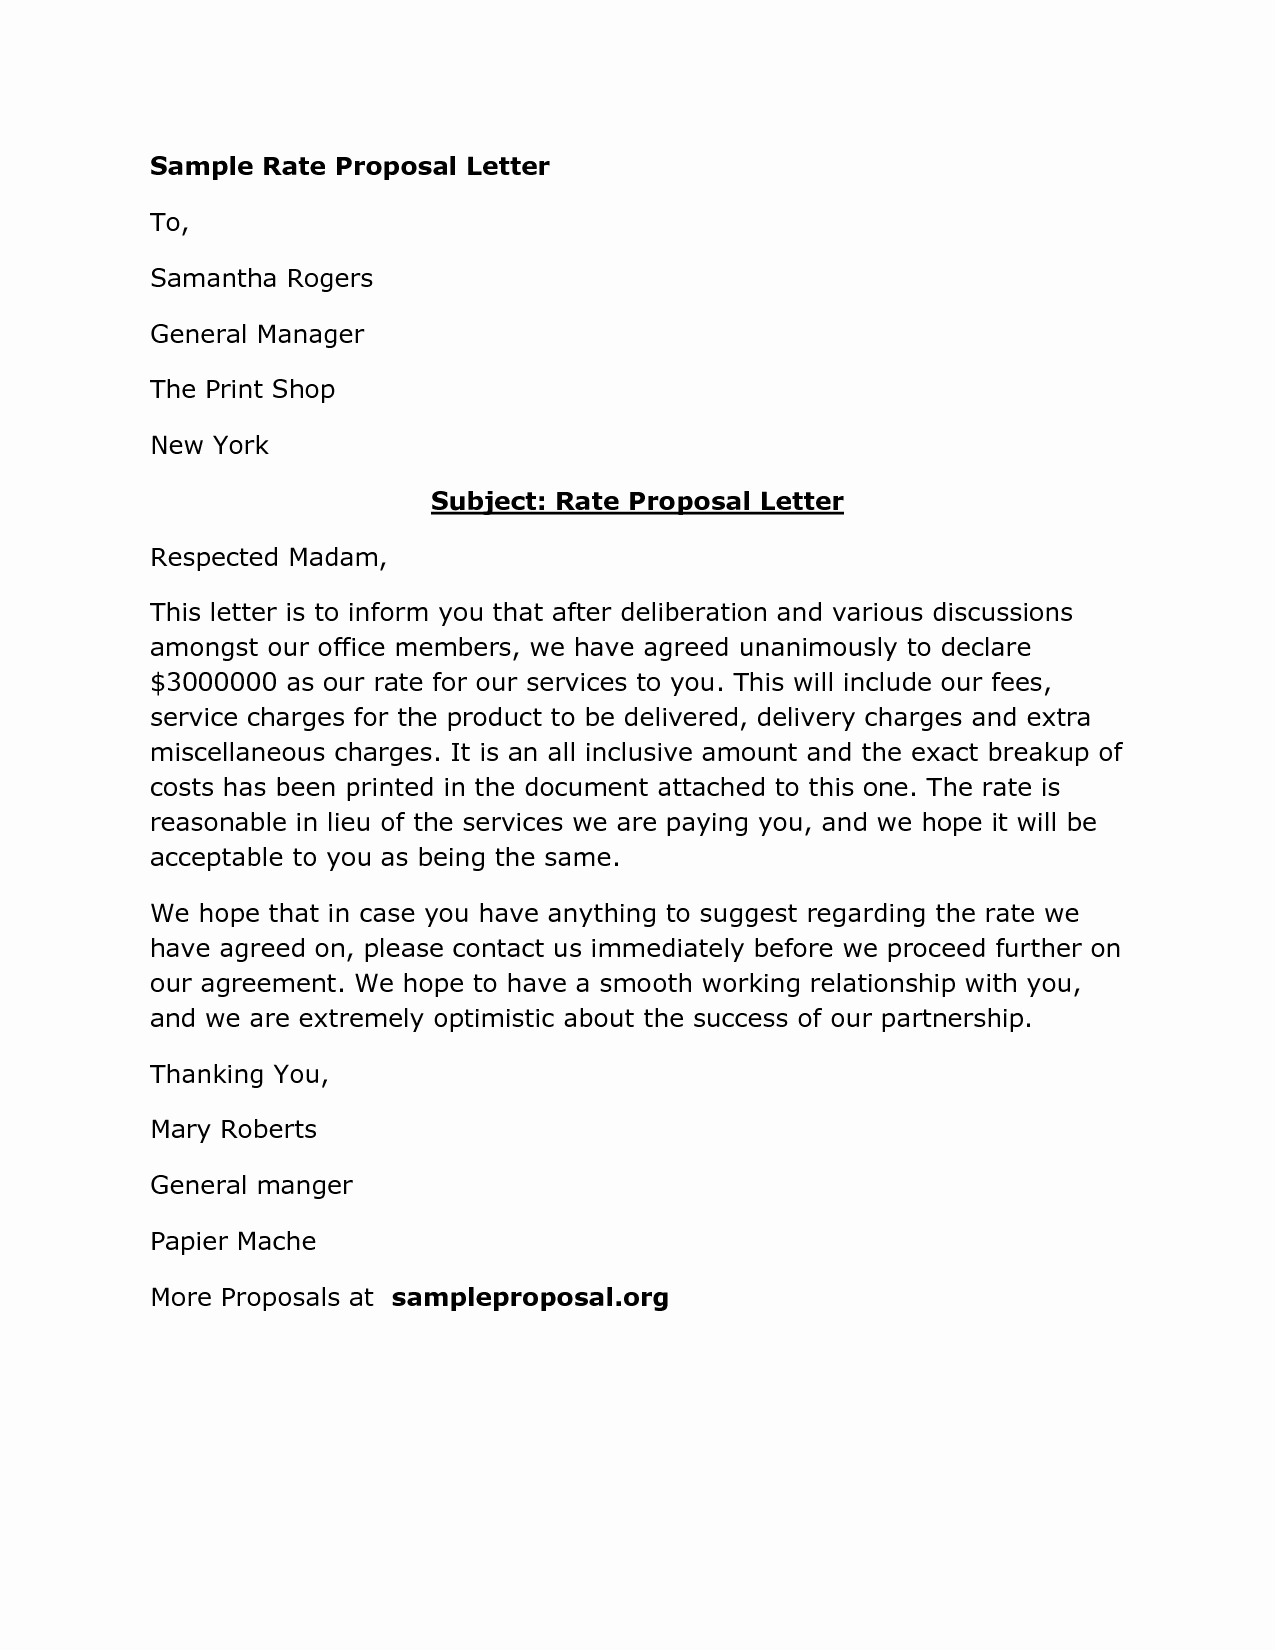 Sample Business Proposal Letter for Partnership Awesome Download Rate Proposal Letter Sample Proposals by